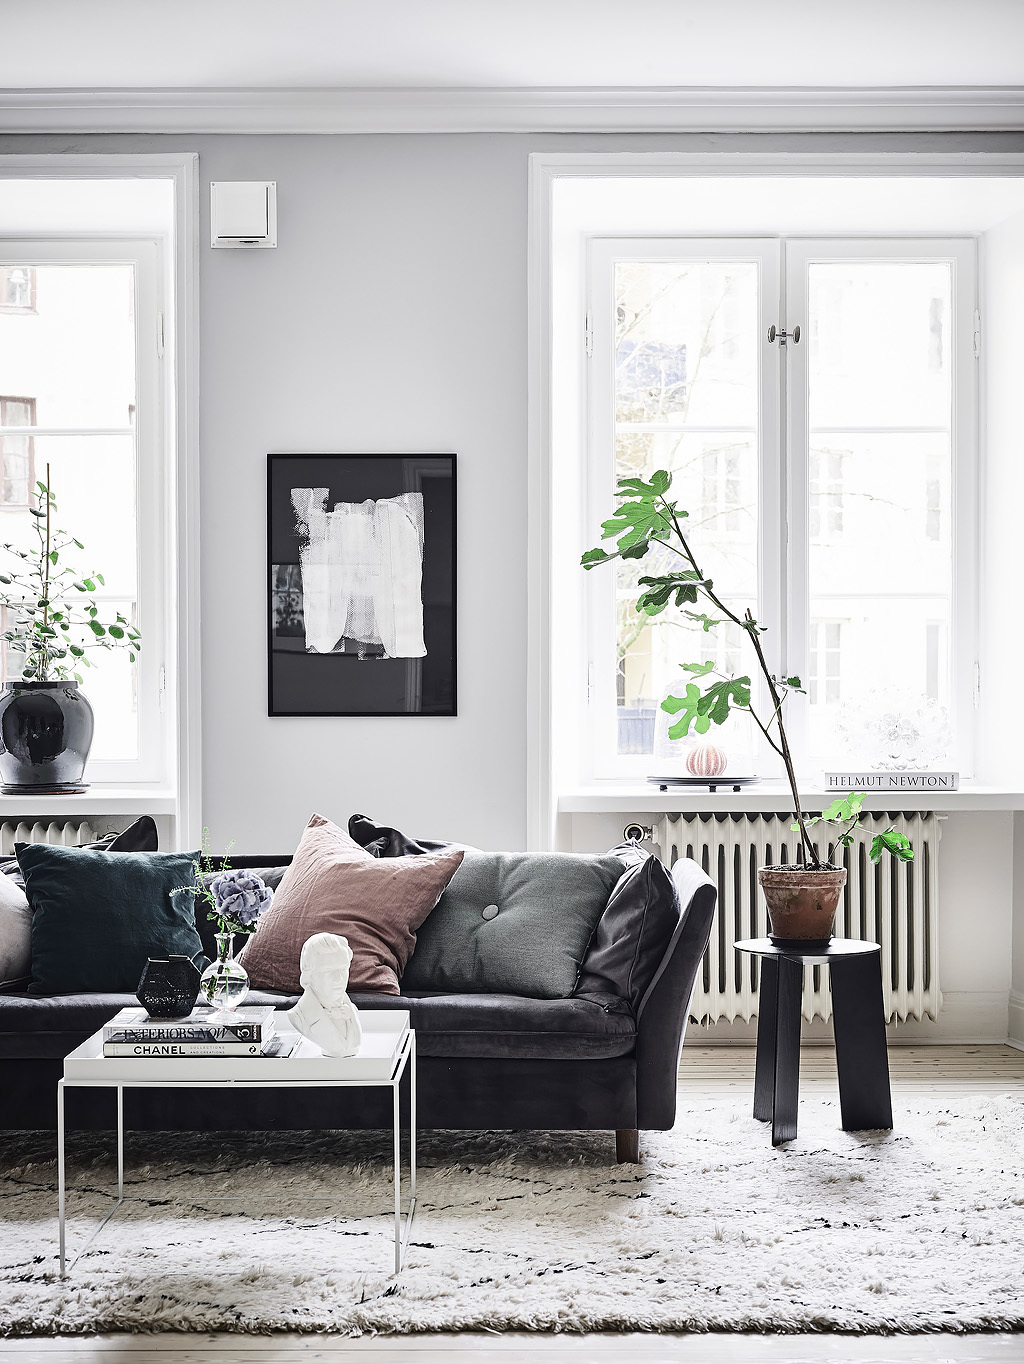 Why You Need These Amazing Black Leather Sofas In Your Home black leather sofas Why You Need These Amazing Black Leather Sofas In Your Home Why You Need These Amazing Black Leather Sofas In Your Home 3